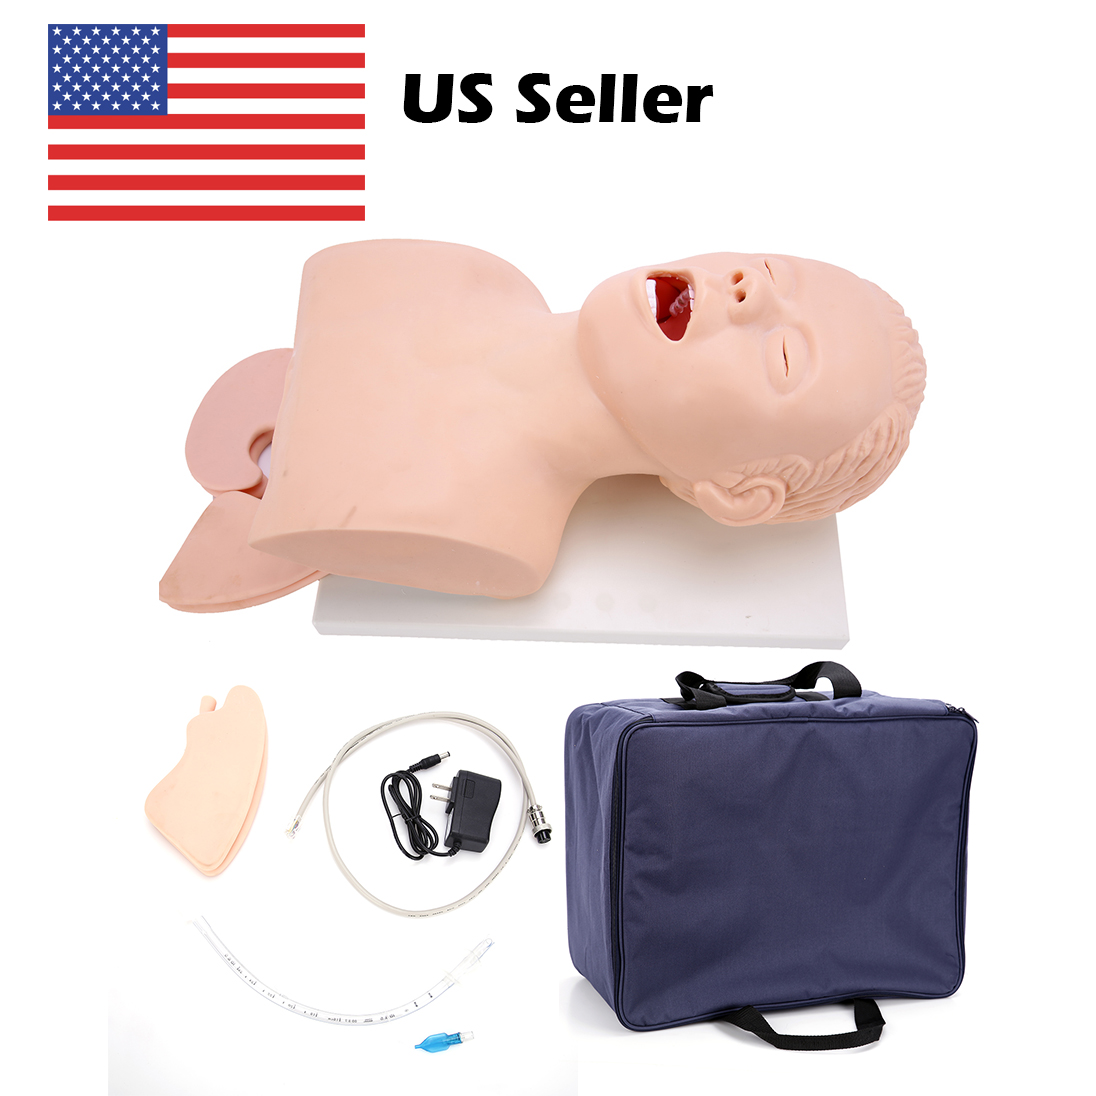 Electronic Adult Trachea Intubation Training Model Adult Intubation Head Model with Alarm Device Intubation Manikin Study Model new child trachea intubation model intubation training model with soft and vivid head and trachea